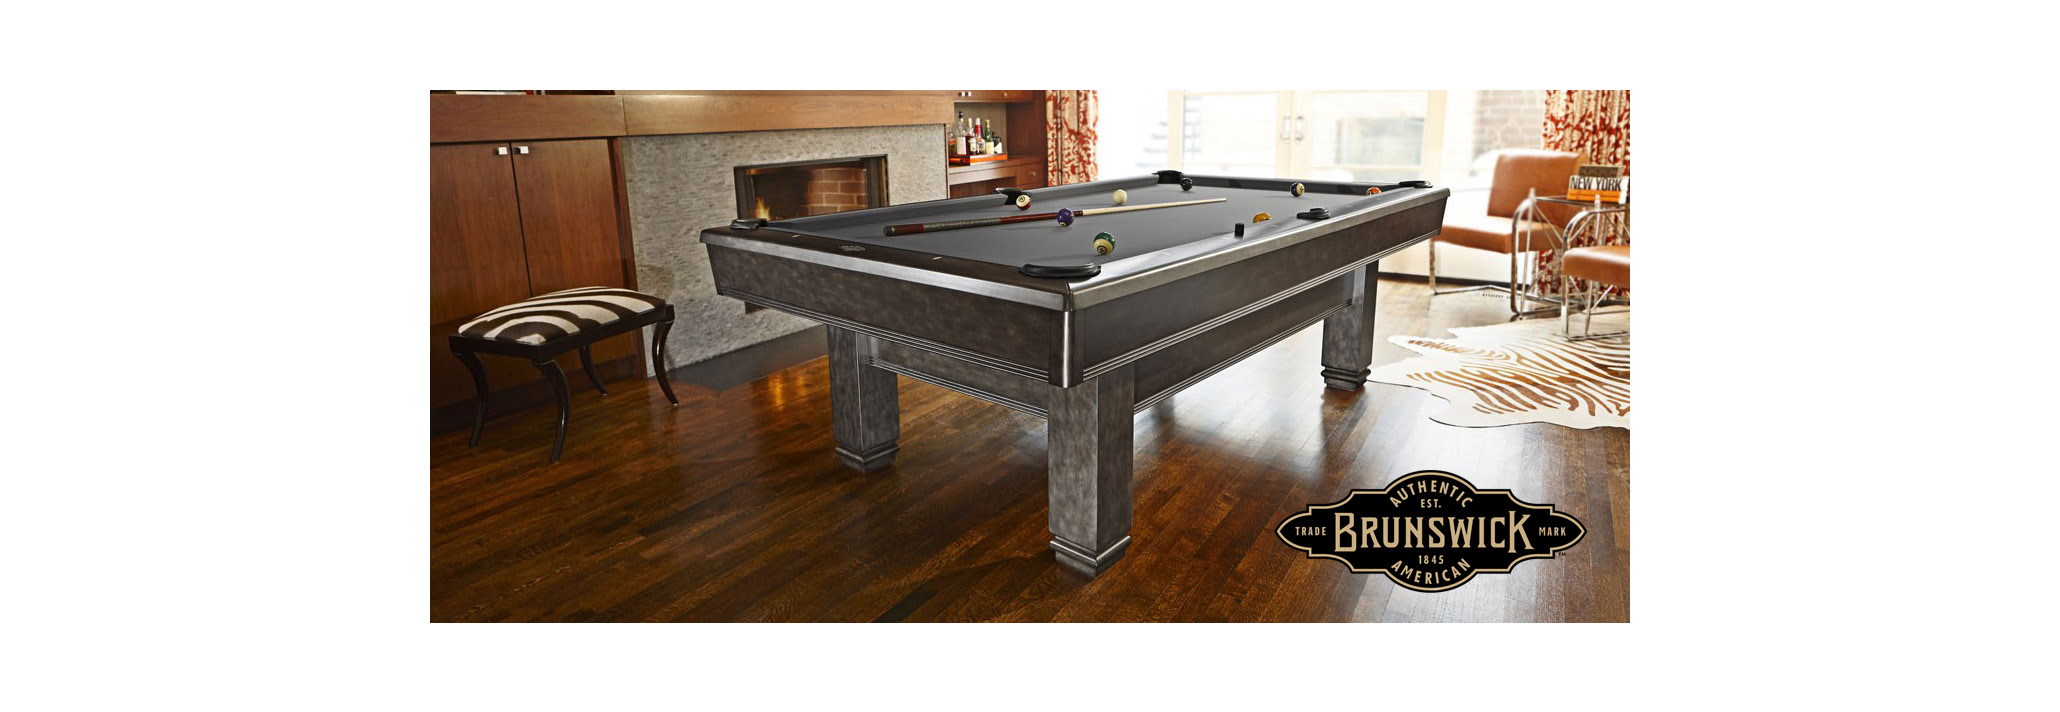 The Pool Table Store - Pool table movers miami